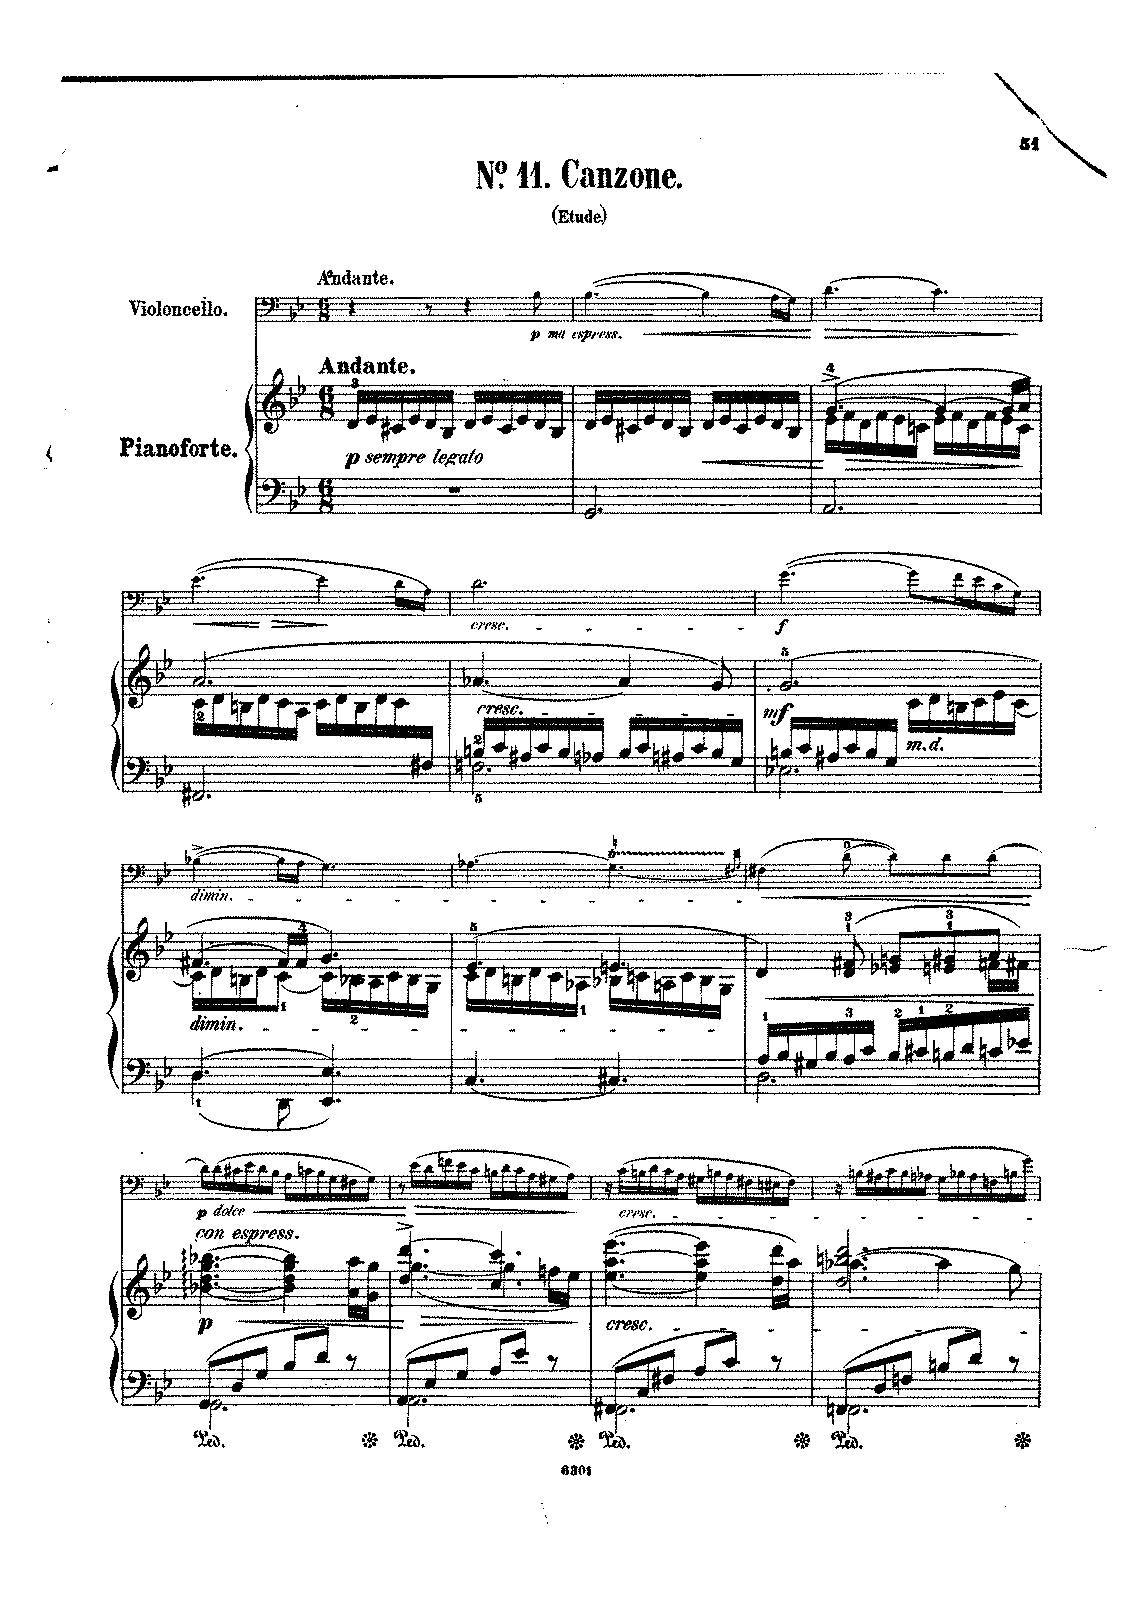 PMLP01969-Chopin - 11a Canzone Etude Op10 No6 for Cello and Piano (Grutzmacher) score.pdf